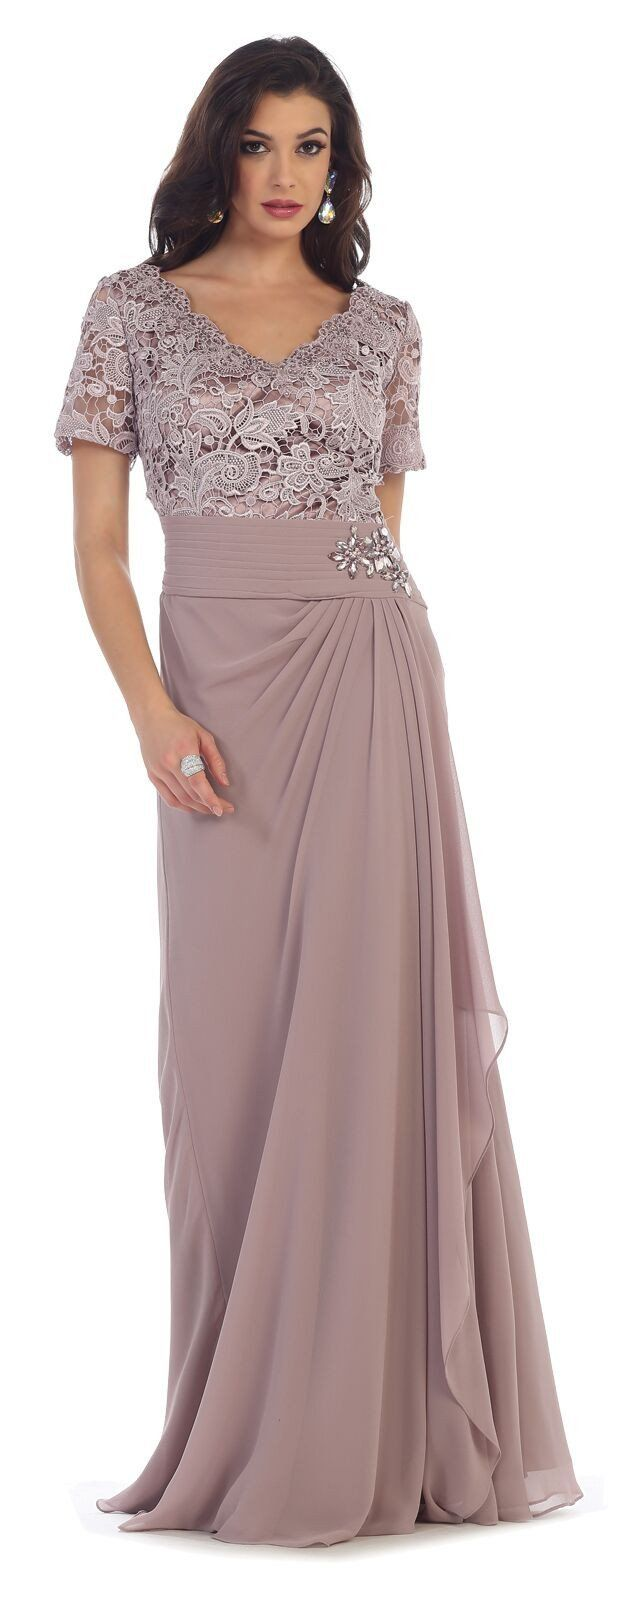 9e88adac17f2 This elegant mother of the bride groom floor length dress comes with short  sleeve